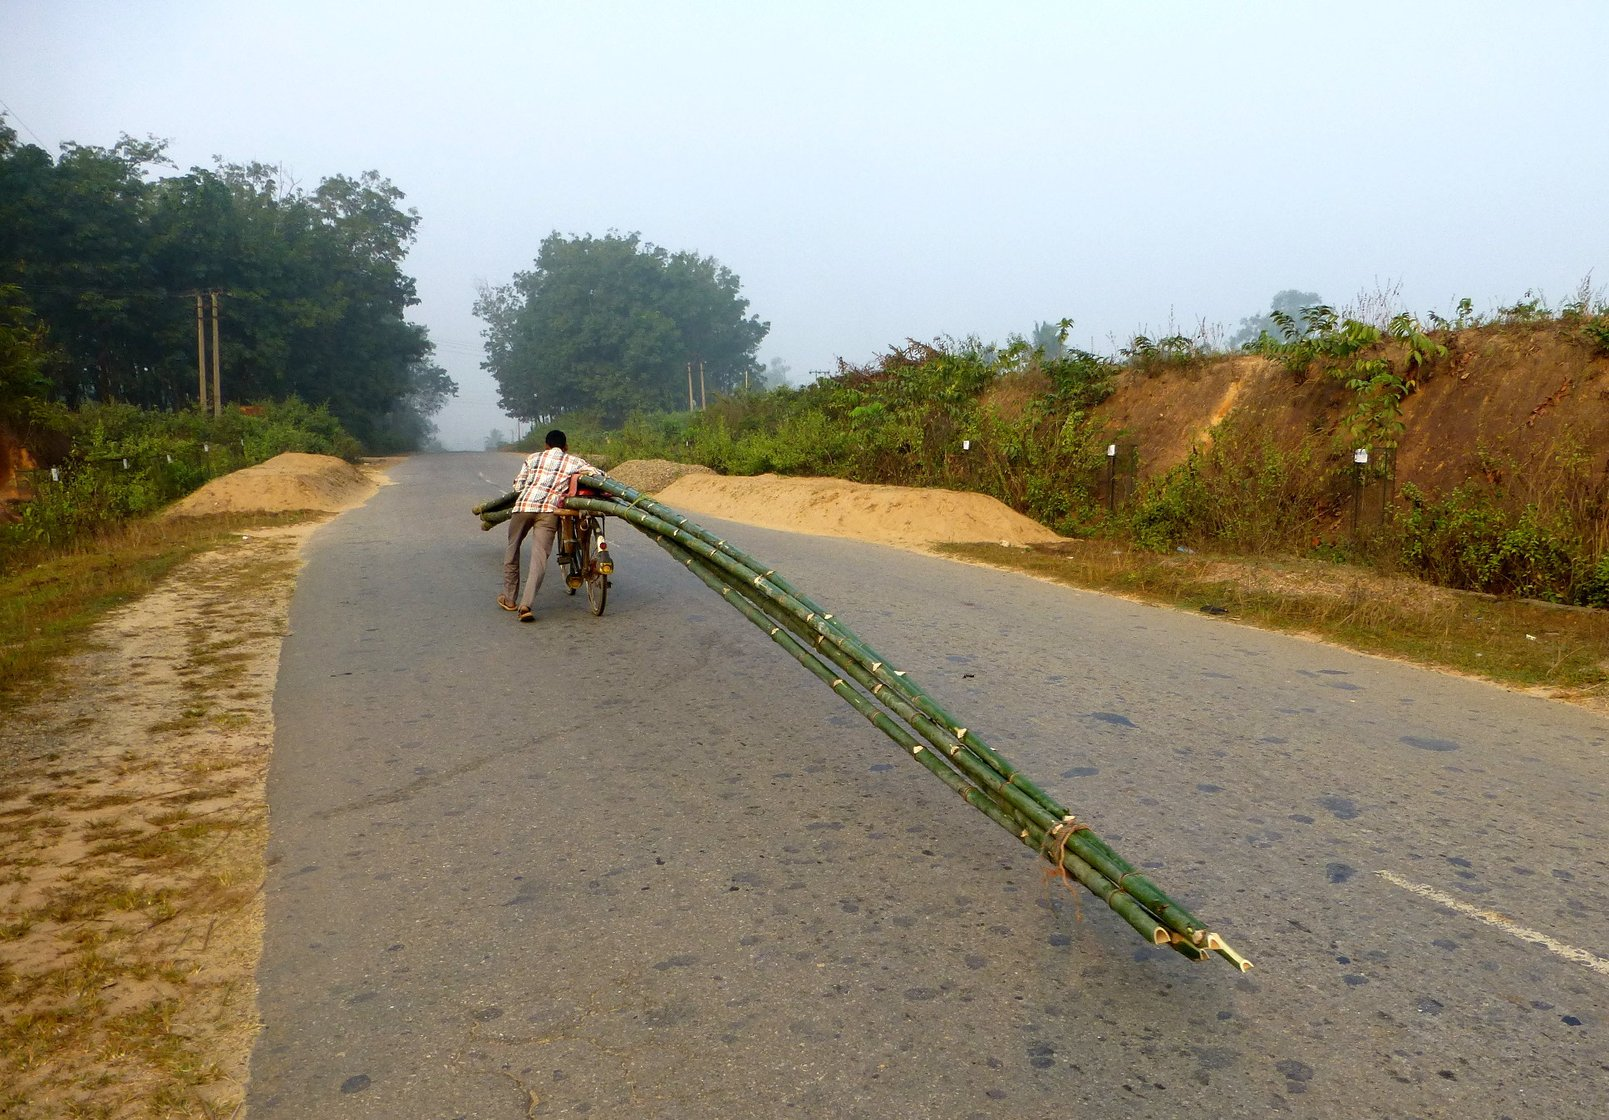 Biswas pushes off in the opposite direction, his bicycle's 40-feet tail wagging gently behind him